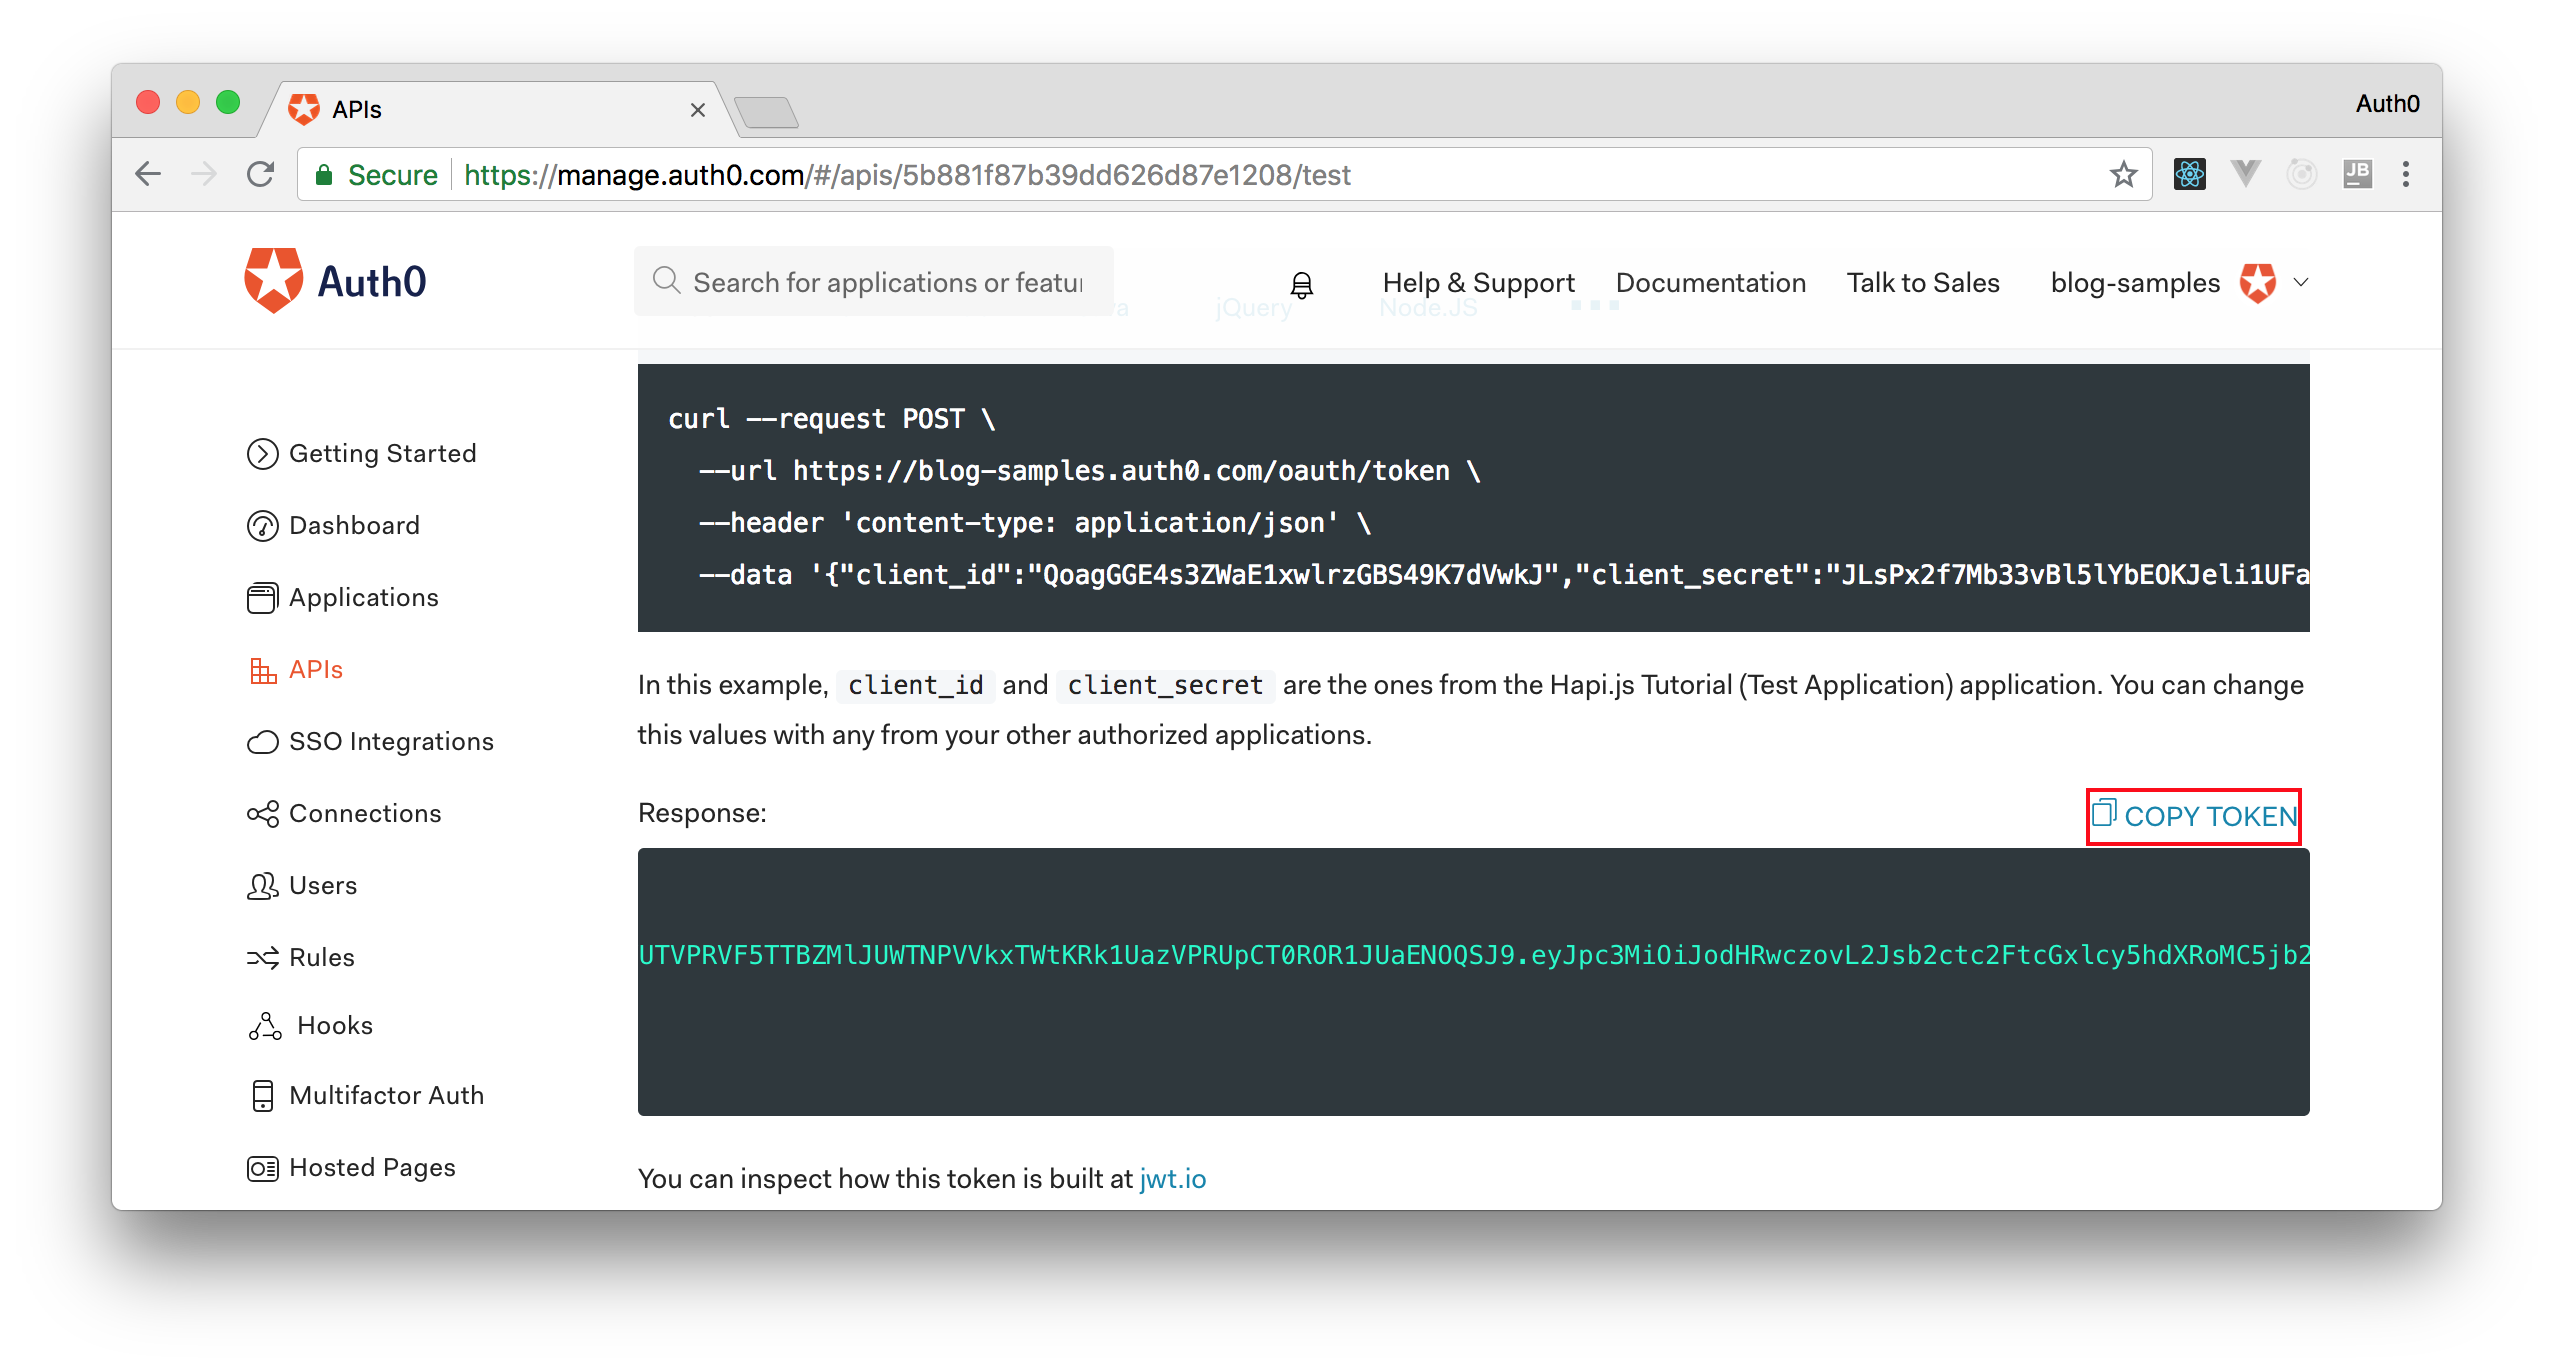 Copying a test token from the Auth0 dashboard.